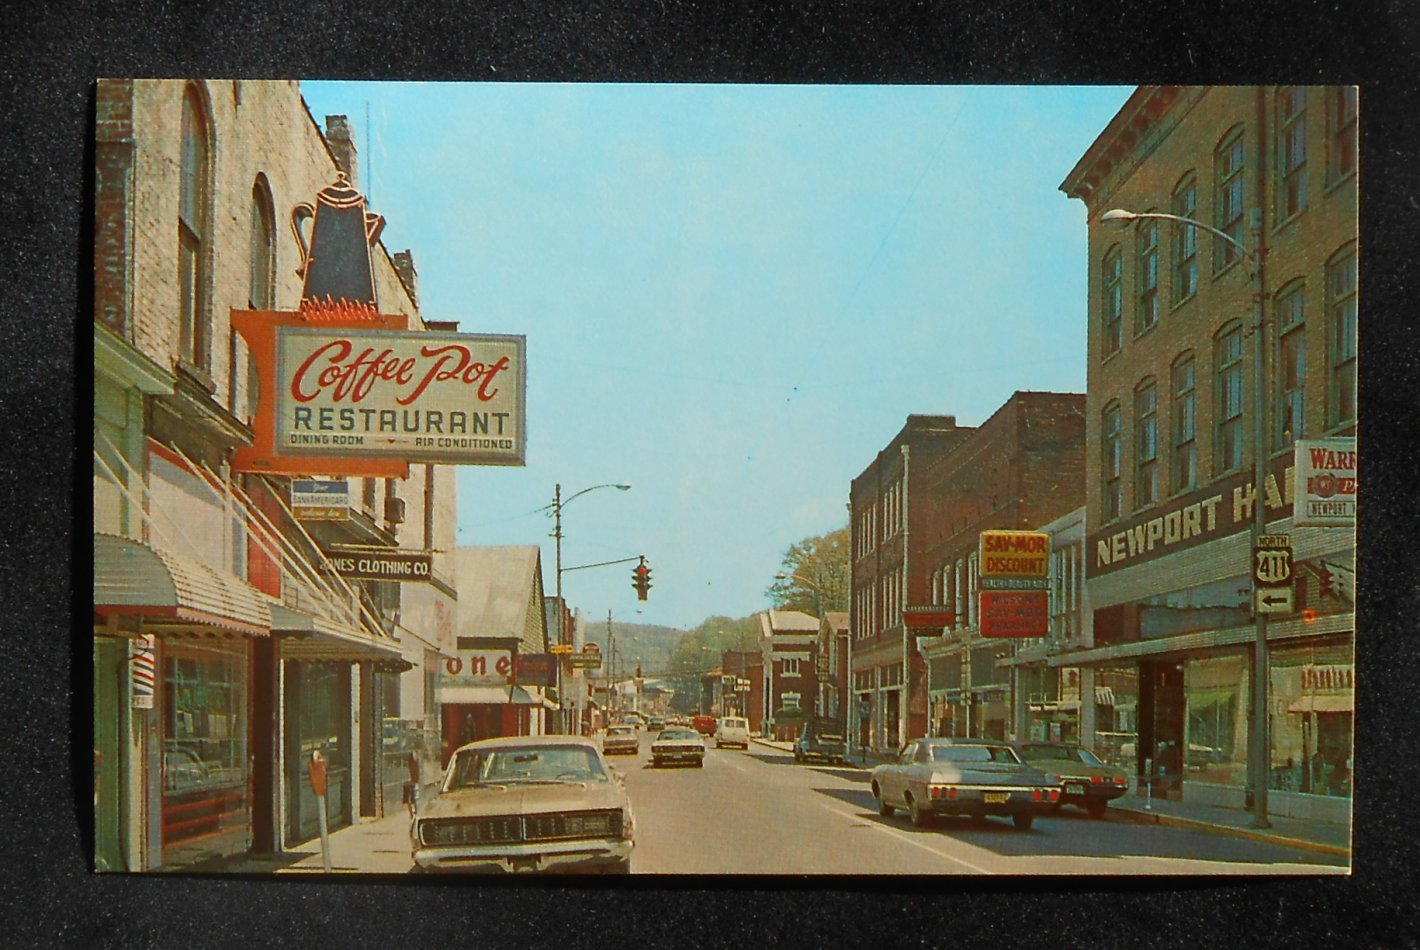 1970s street coffee pot restaurant old cars store signs for Dining in newport tn